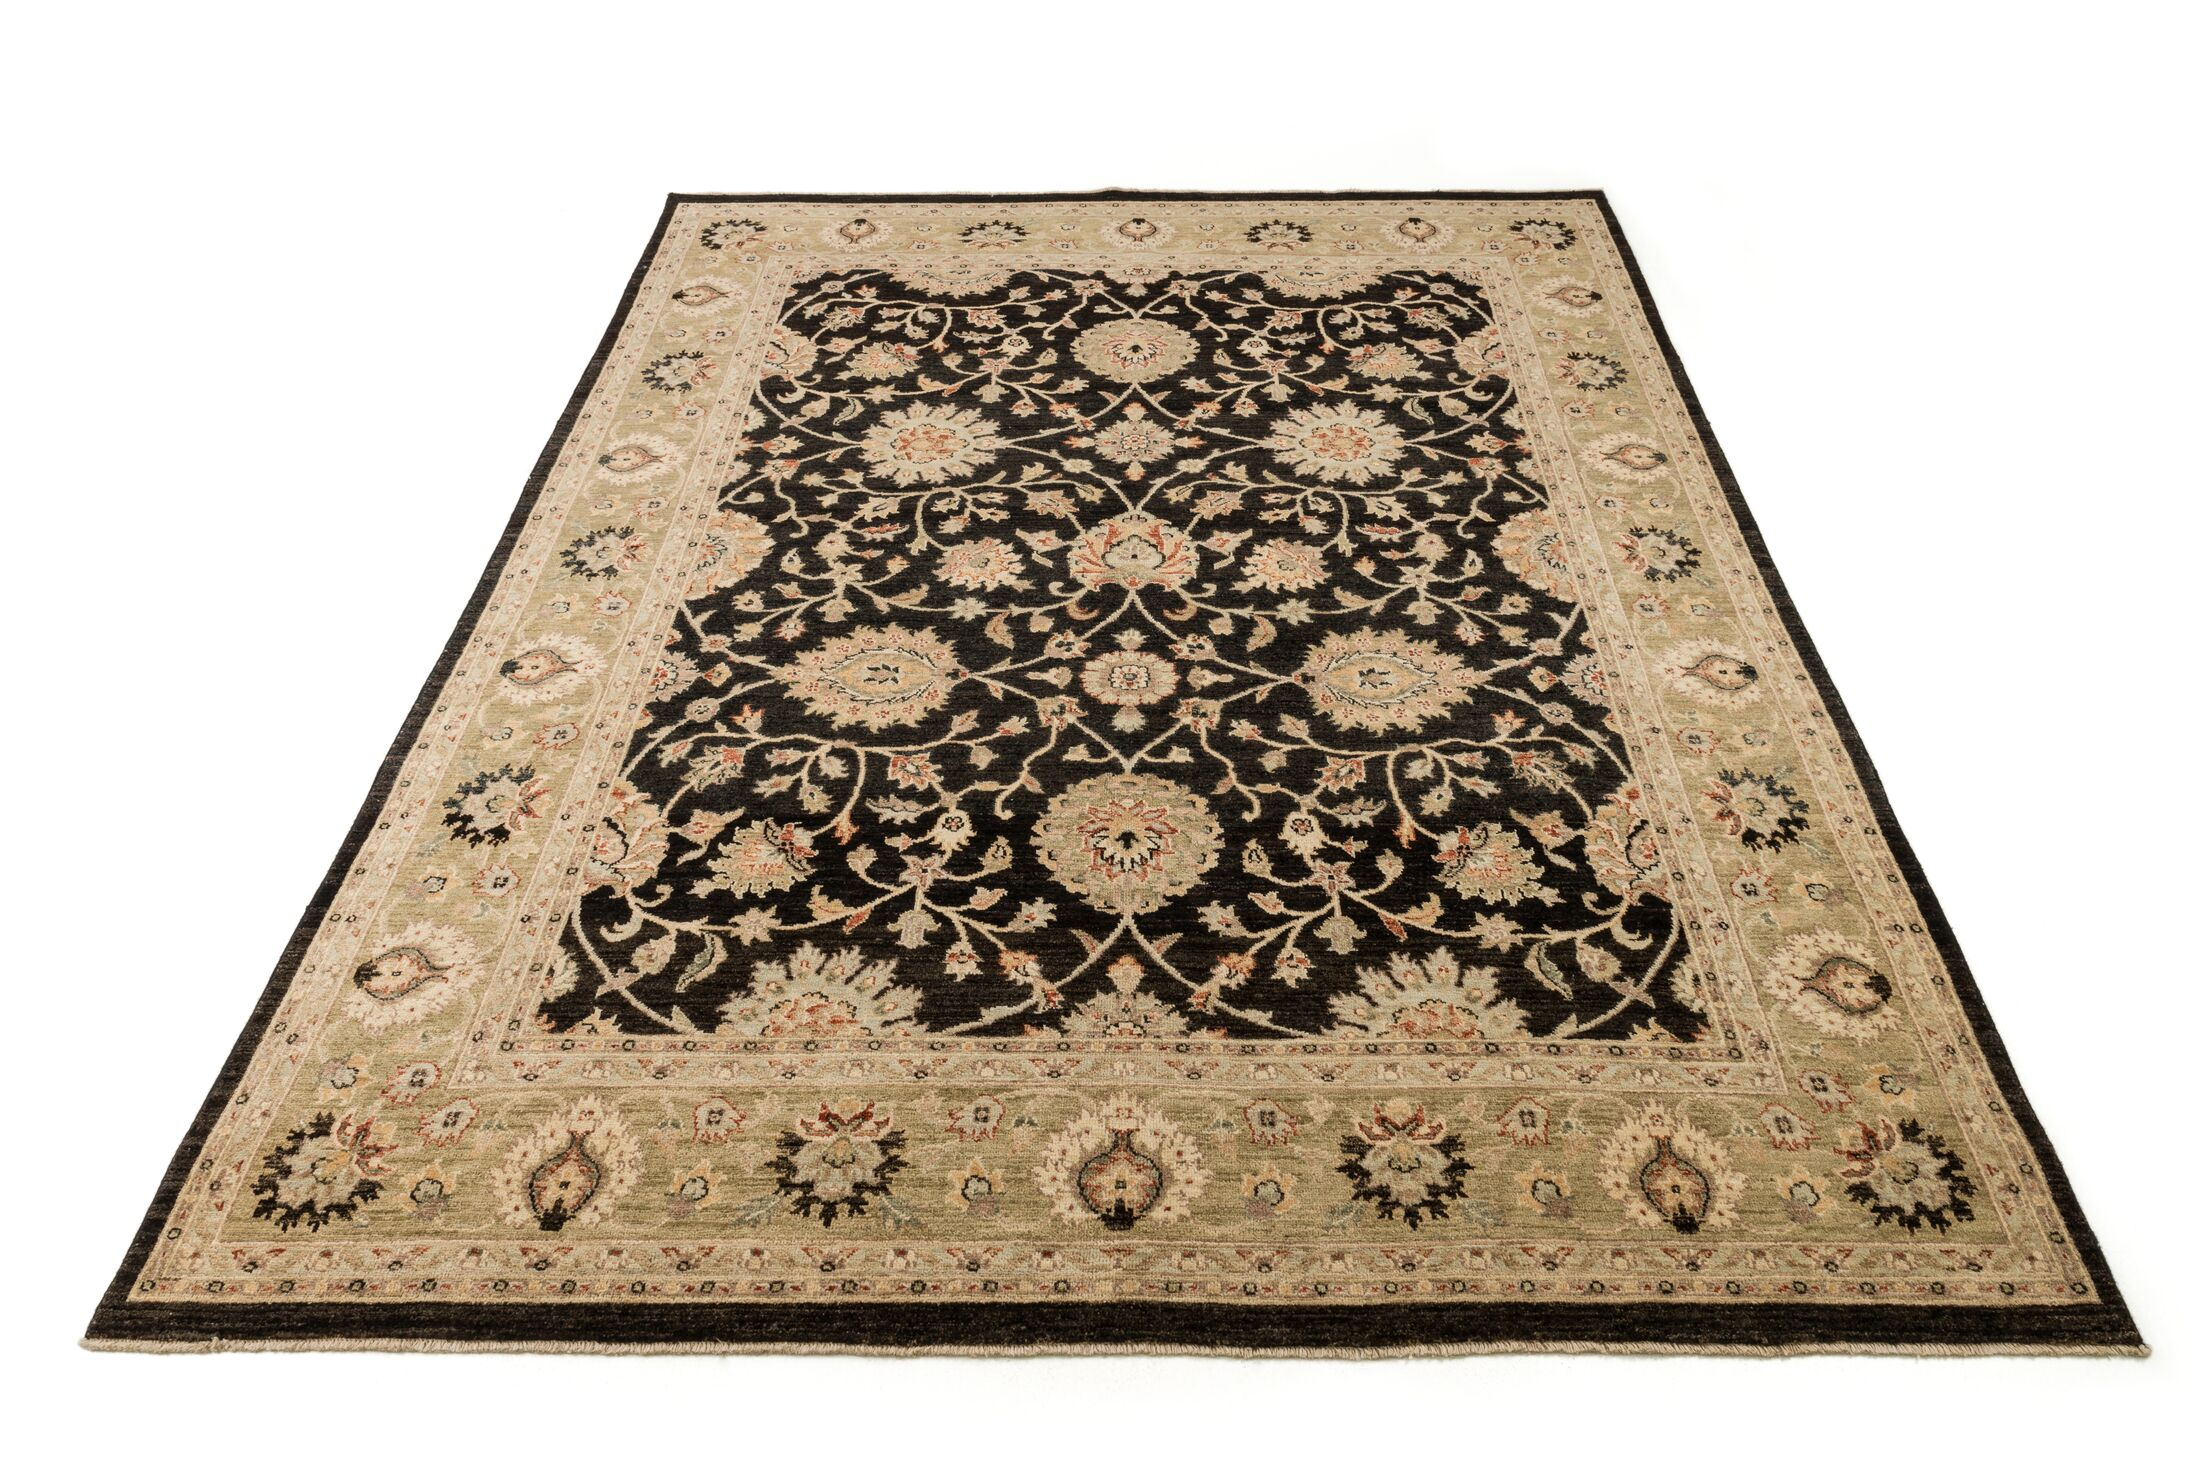 Durden Hand-Knotted Black/Ivory Area Rug Rug Size: Rectangle 8'6